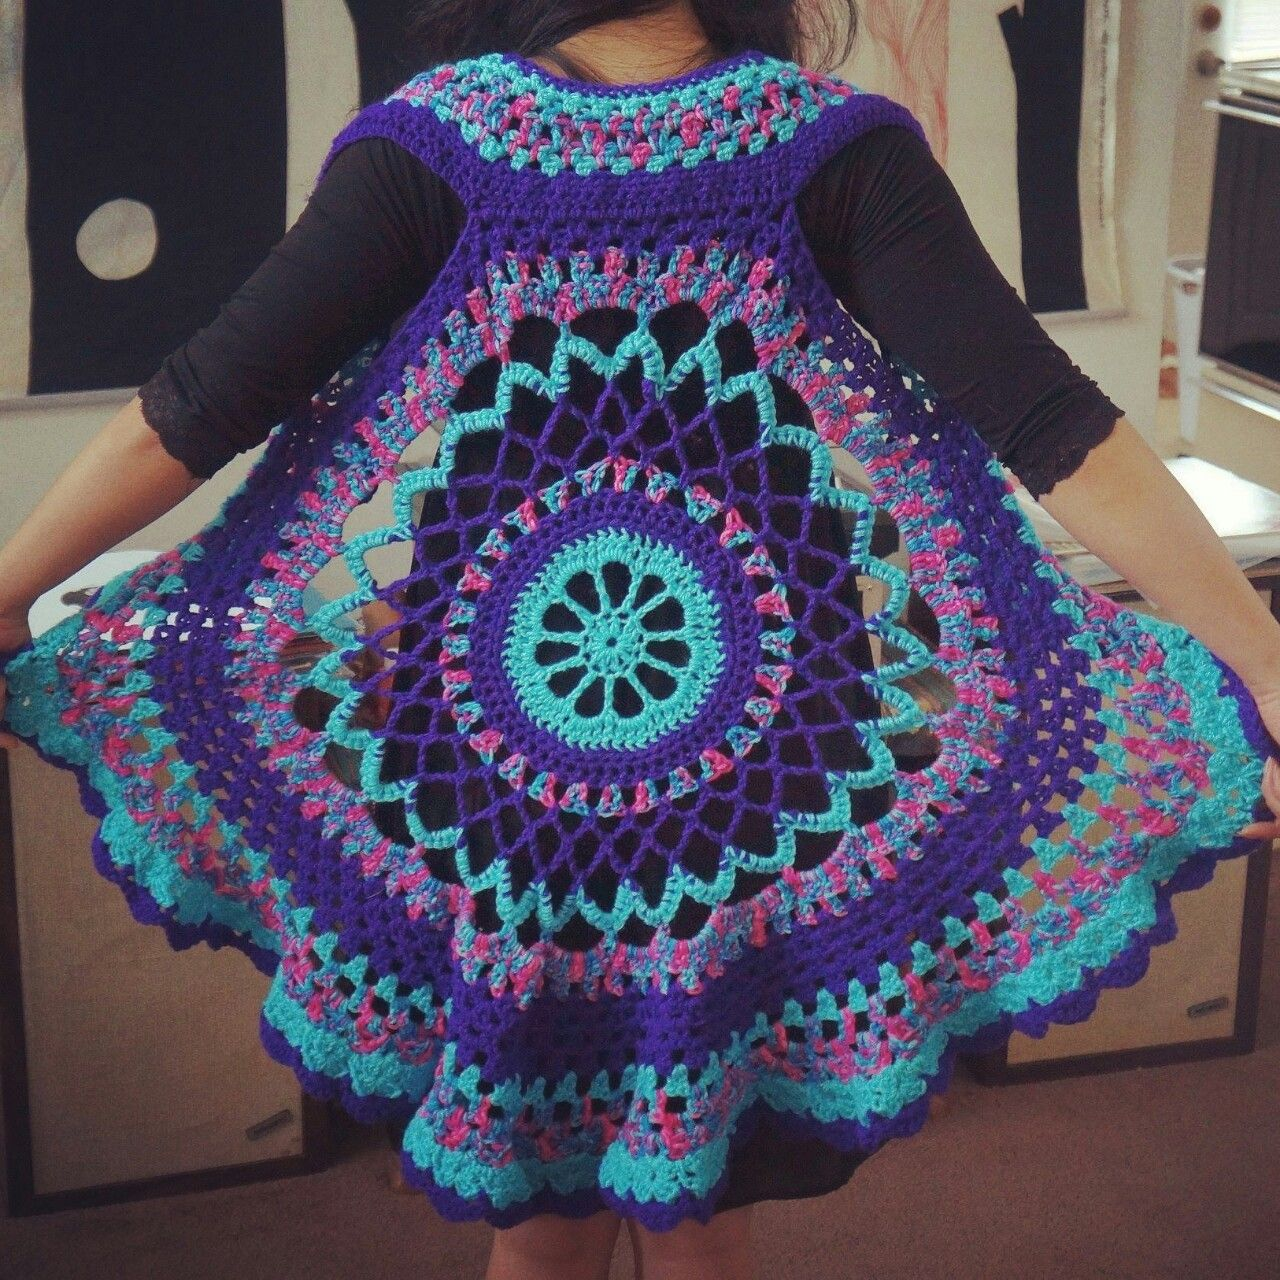 Crocodile Smile Shop — Crochet Mandala vest | Crochet shrugs /wraps ...